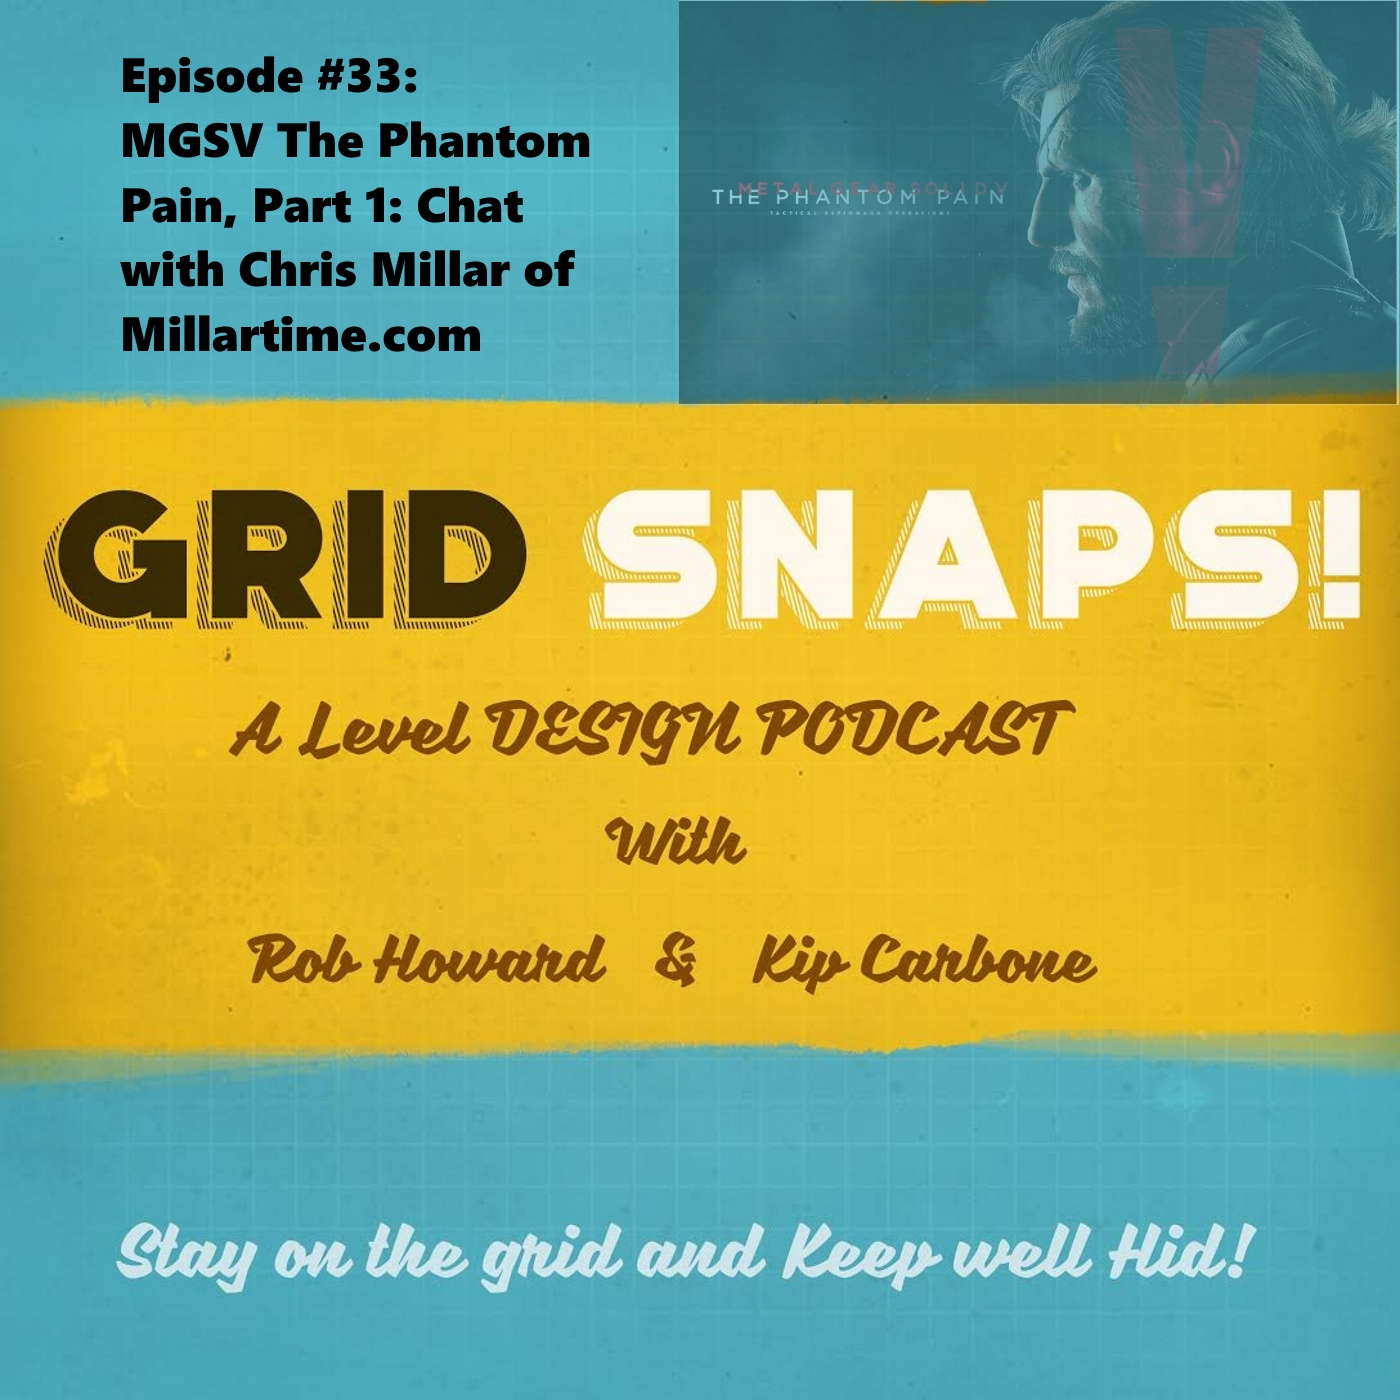 GSPC Episode #33: Metal Gear Solid V: The Phantom Pain, Part 1: Chat with Chris Millar of Millartime.com